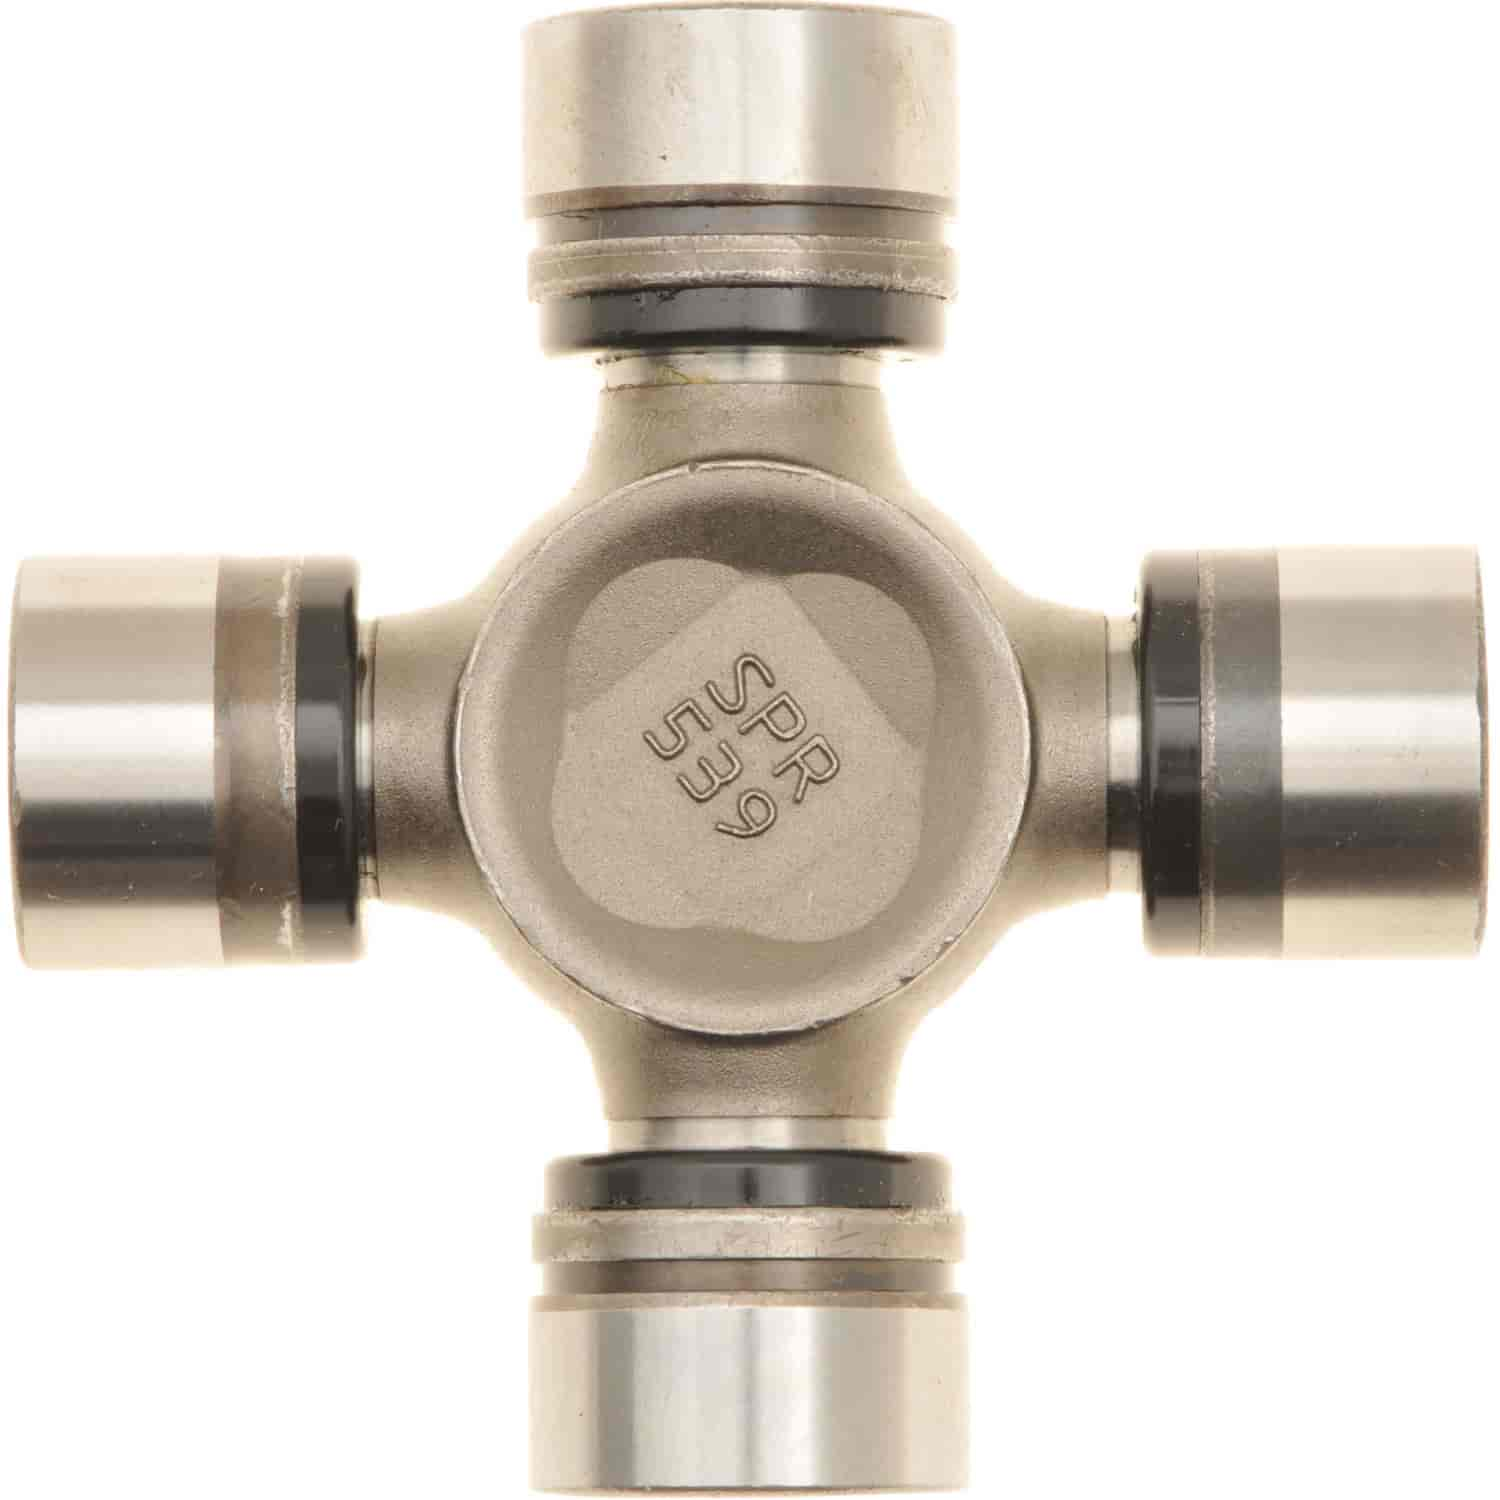 driveshaft u joint series conversion available via PricePi